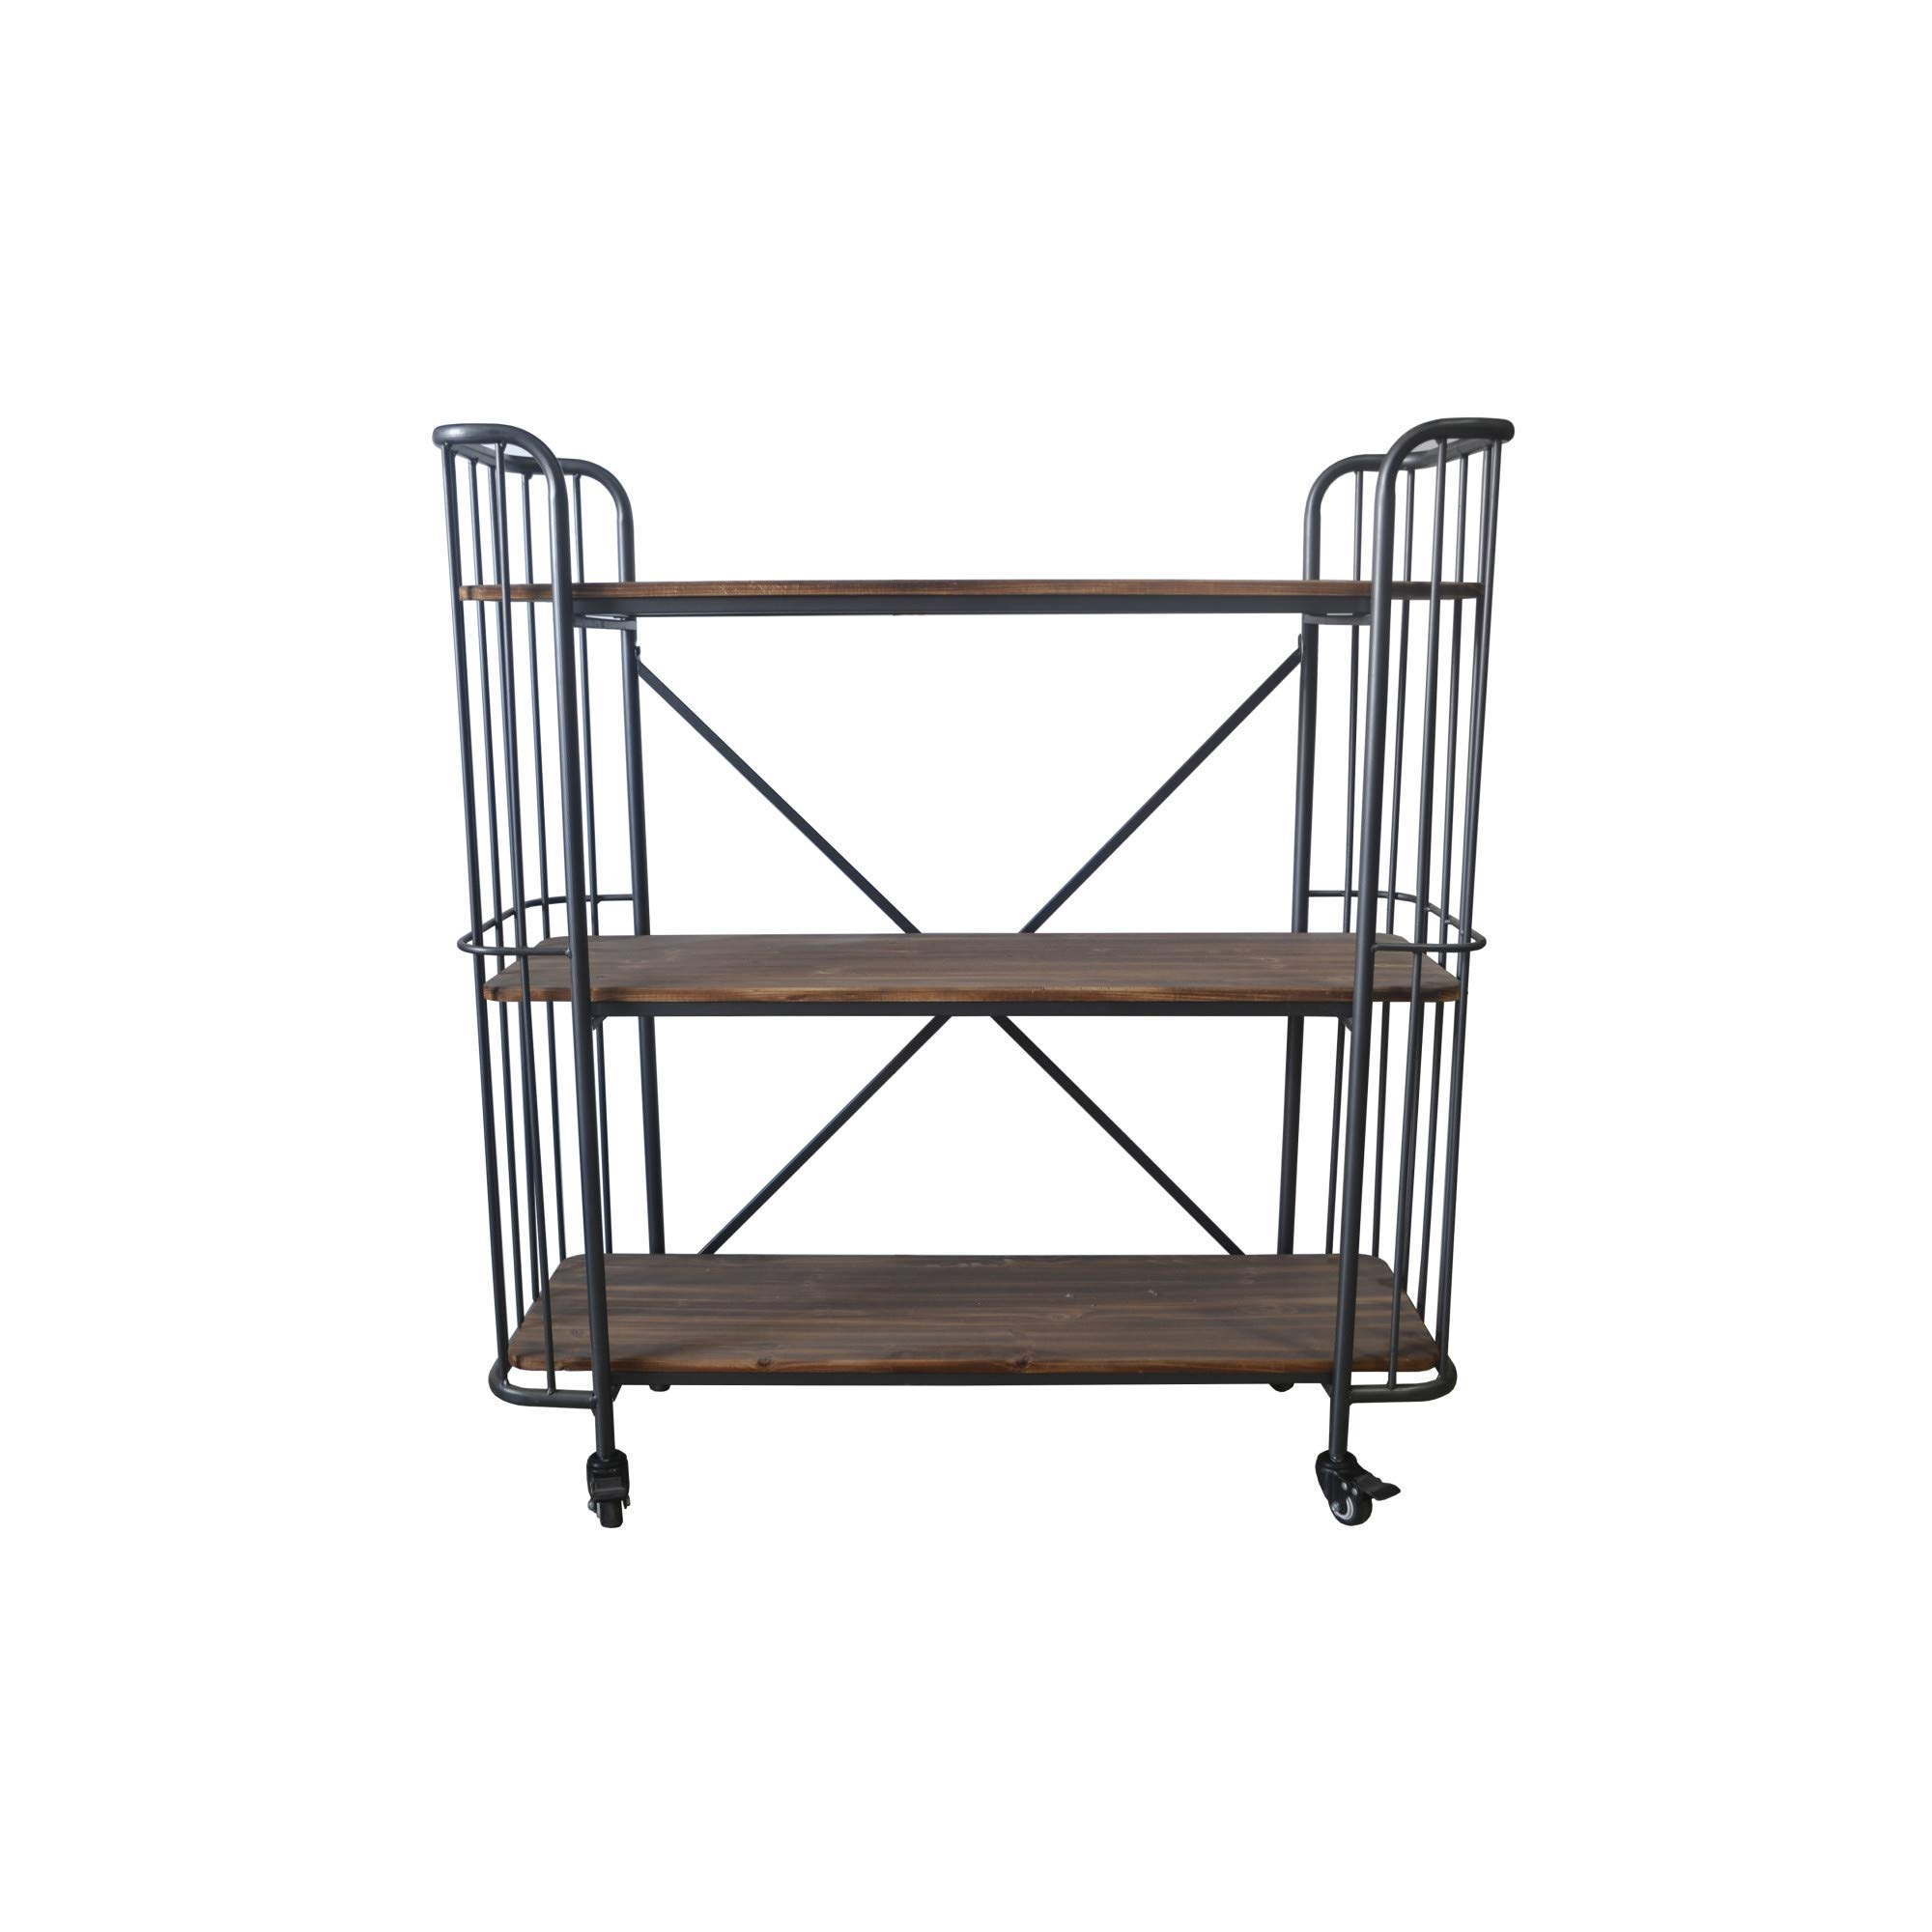 Herrera 41.73'' Bookcase in Dark Gray with Casters, Shaped Tubular Steel Frame And Three Solid Wood Shelves, by Artum Hill